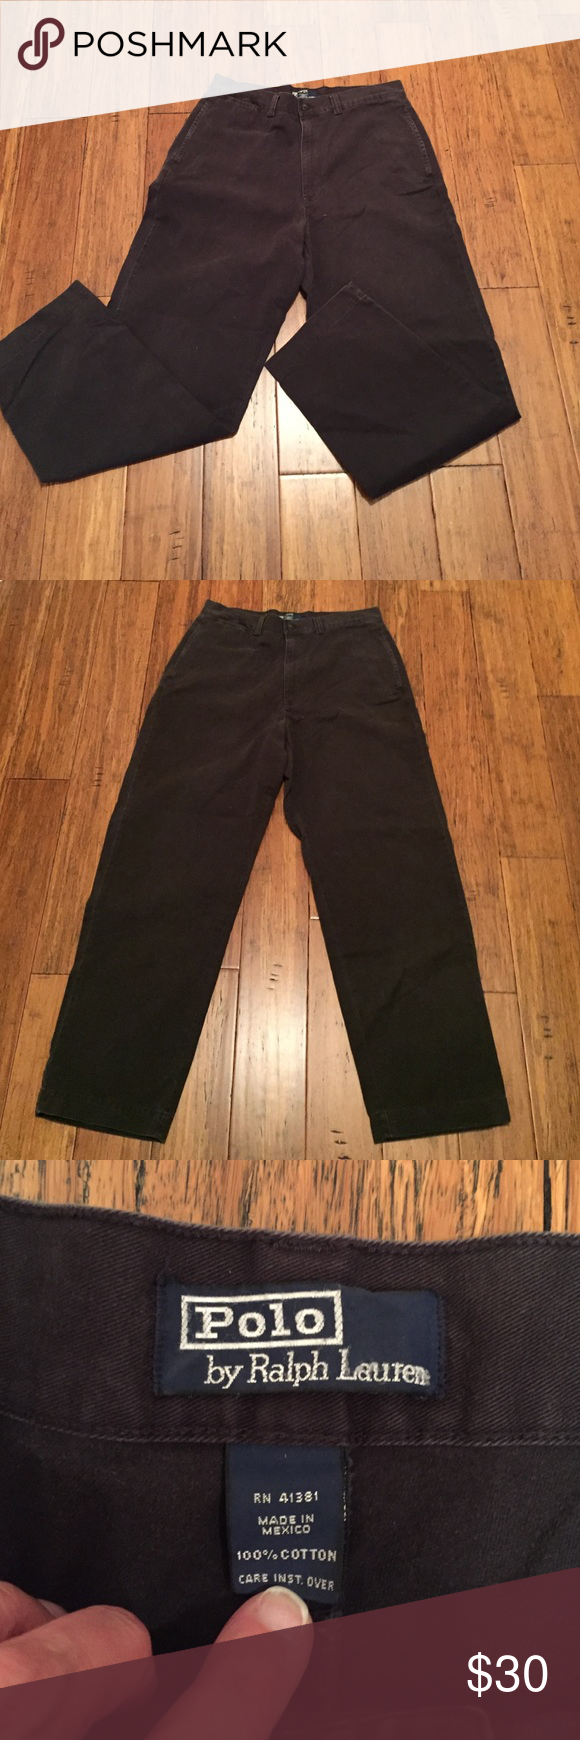 Polo by Ralph Lauren chinos Never worn navy chinos...size 33 by 32. Flat front perfect condition -- closet staple for work or play. Polo by Ralph Lauren Pants Chinos & Khakis